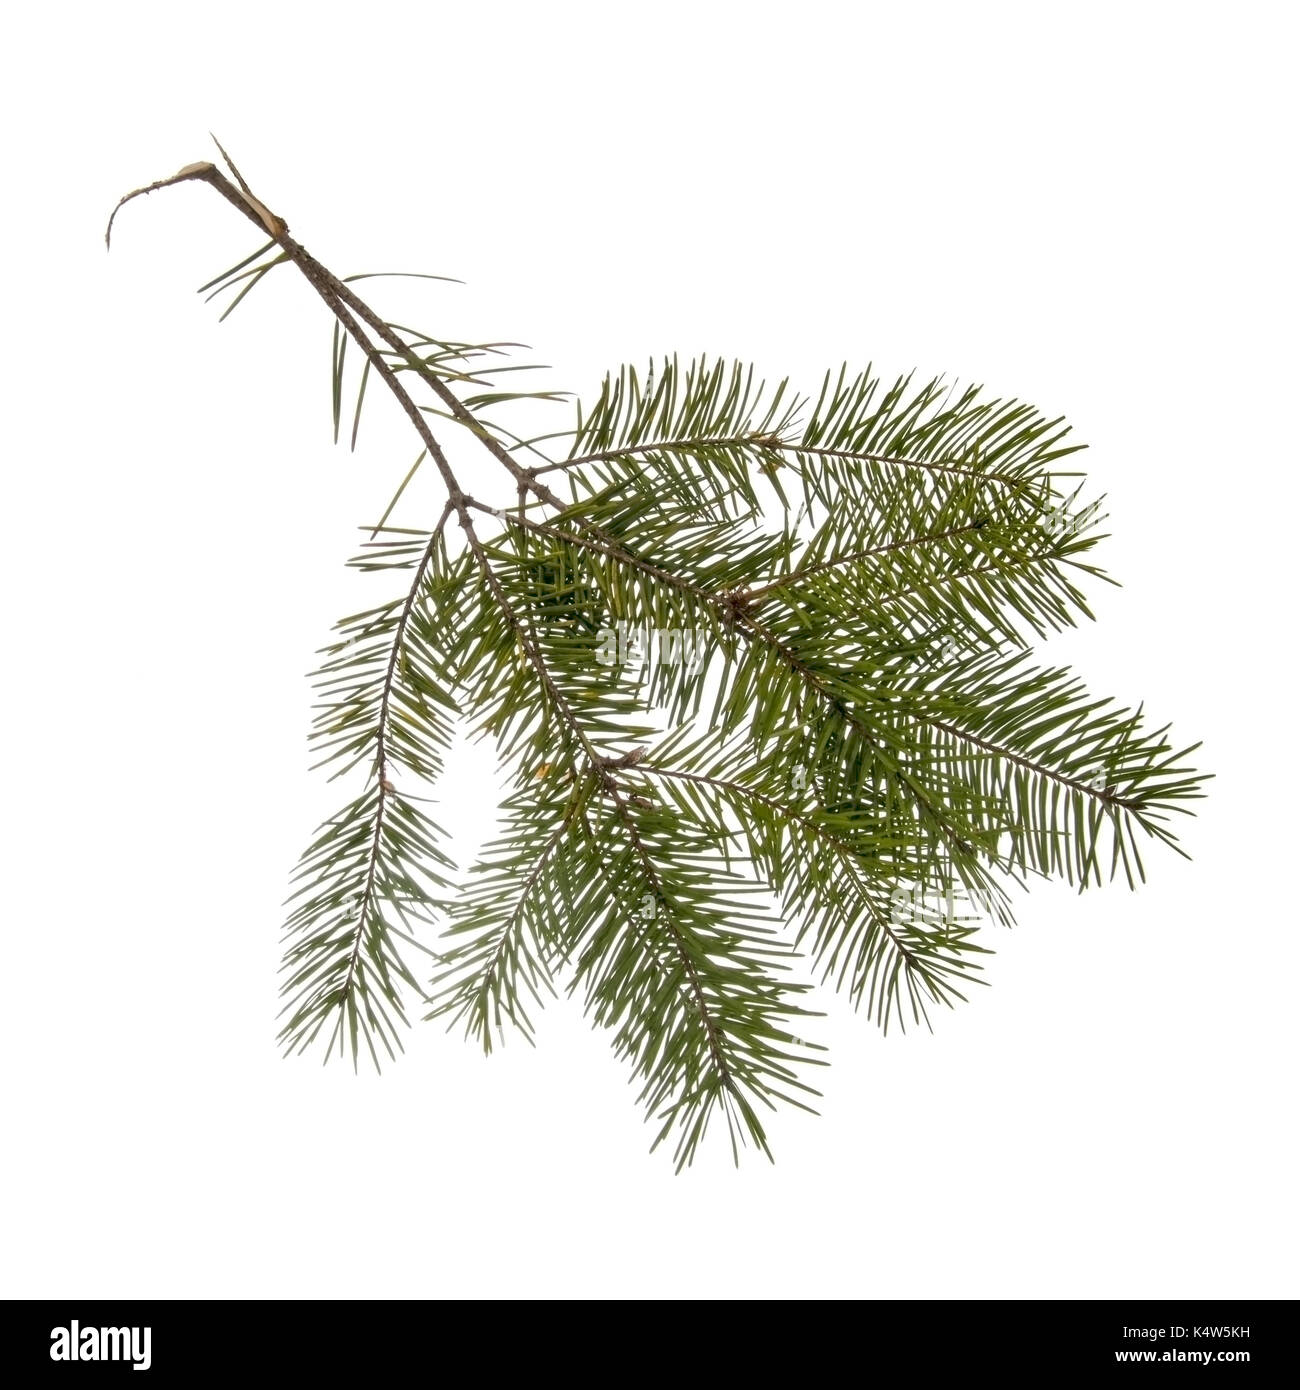 Two pine, fir twigs from a Christmas tree. Isolated on white. - Stock Image